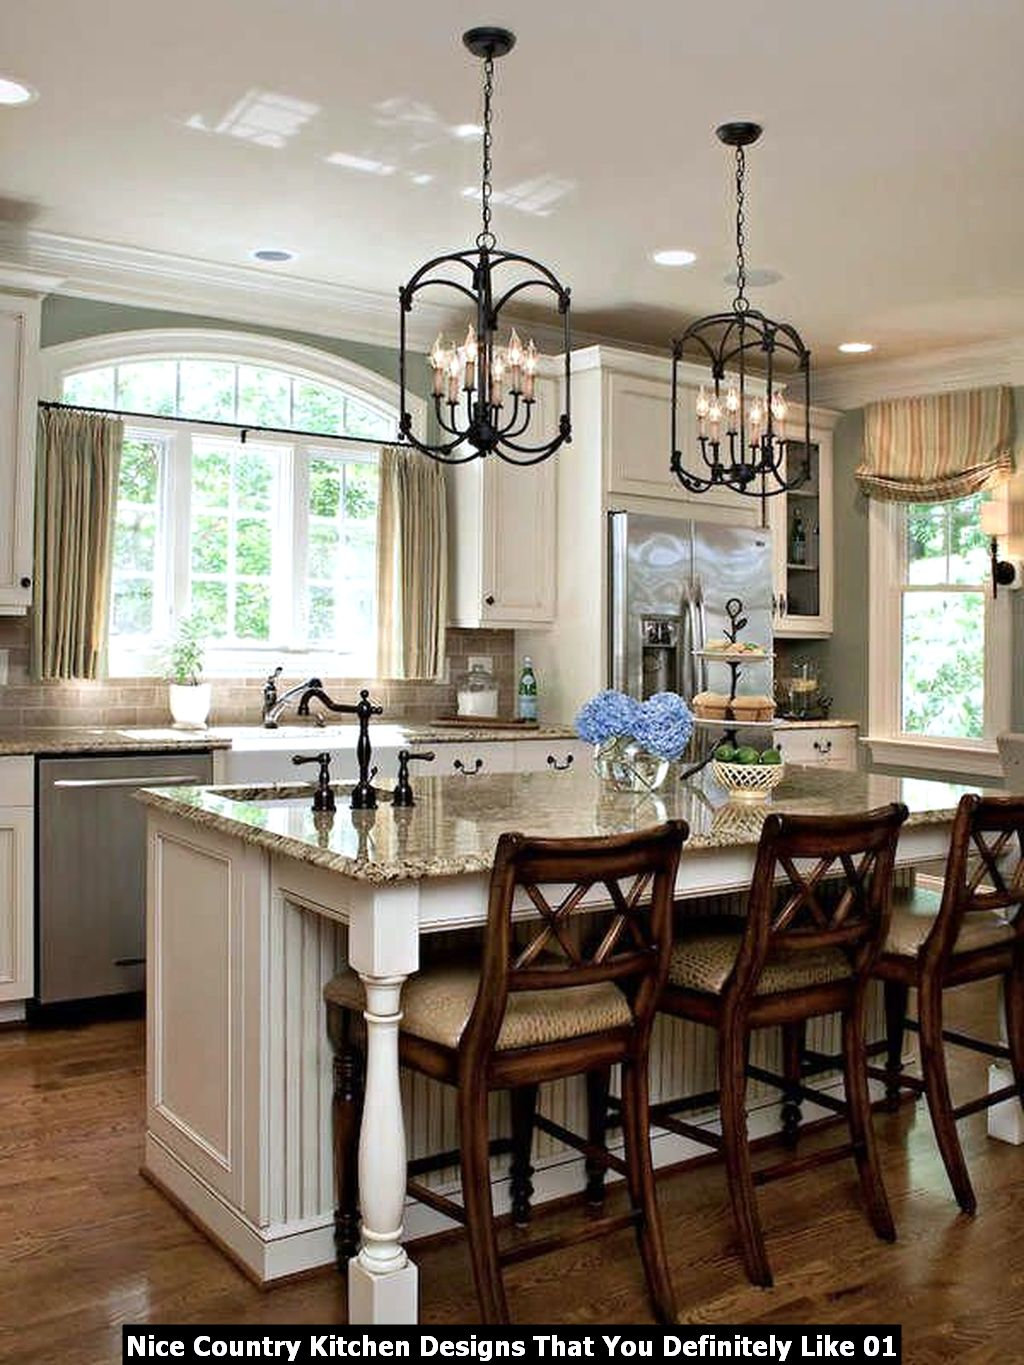 Nice Country Kitchen Designs That You Definitely Like 01